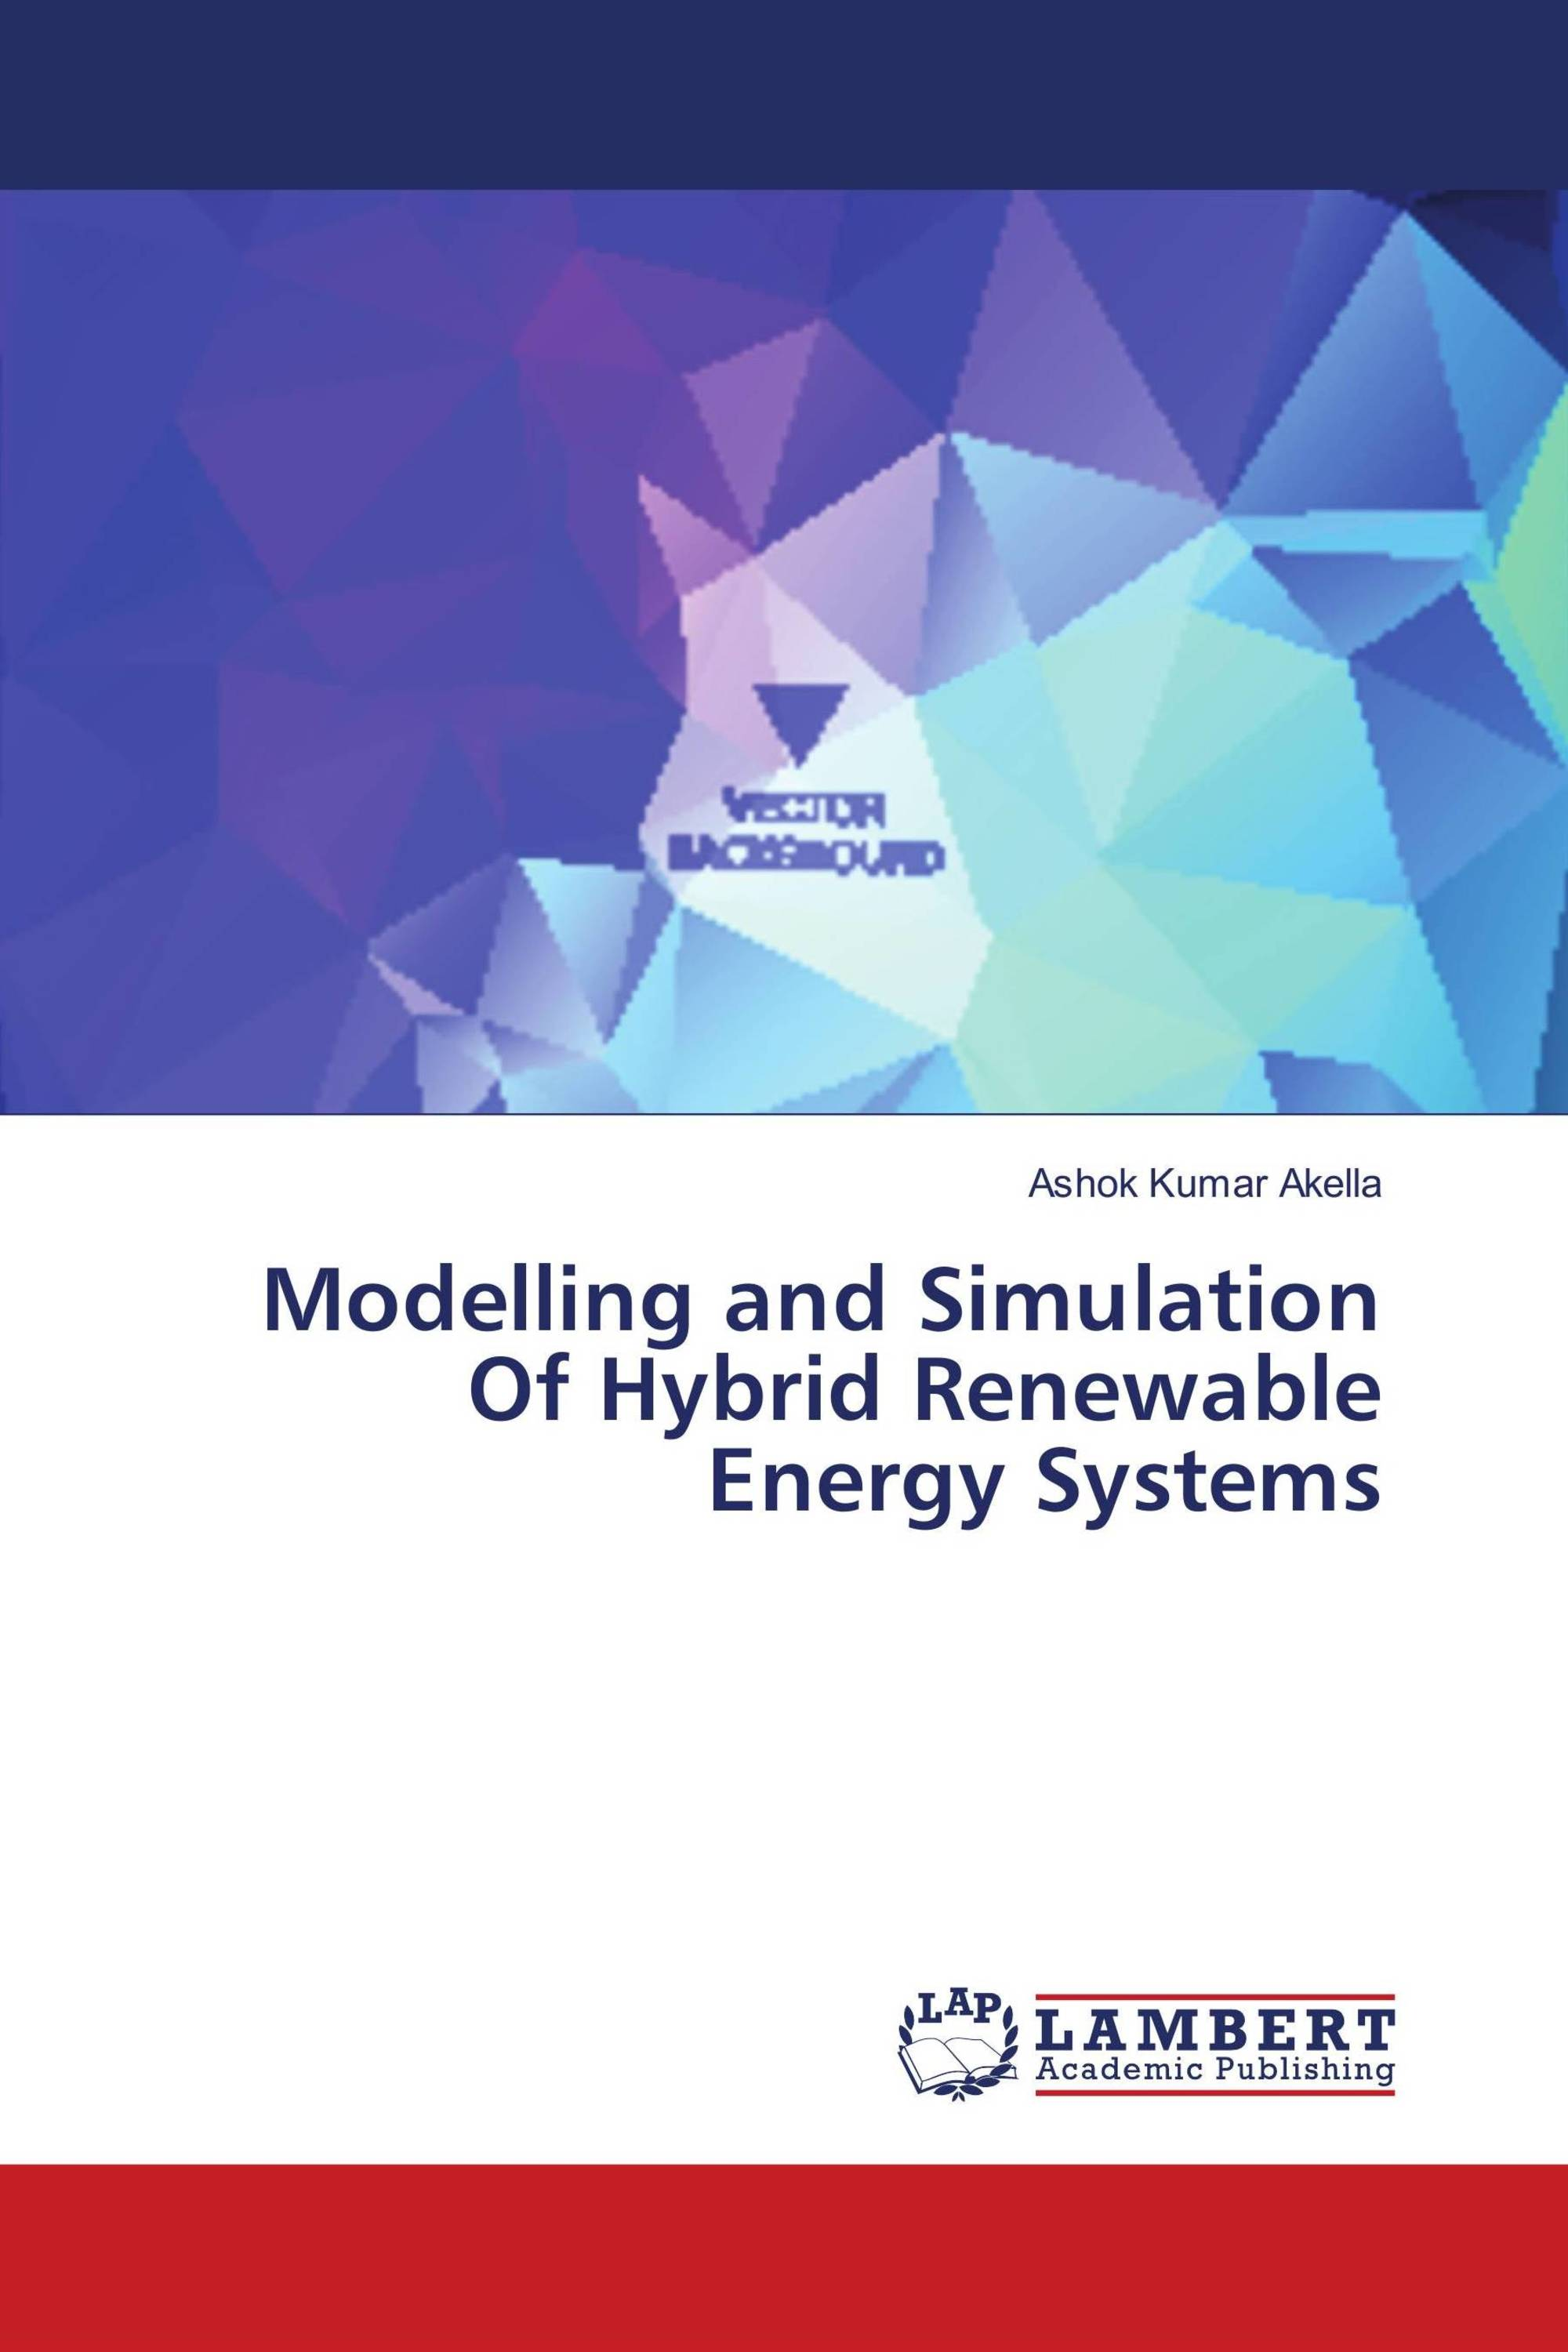 Modelling and Simulation Of Hybrid Renewable Energy Systems